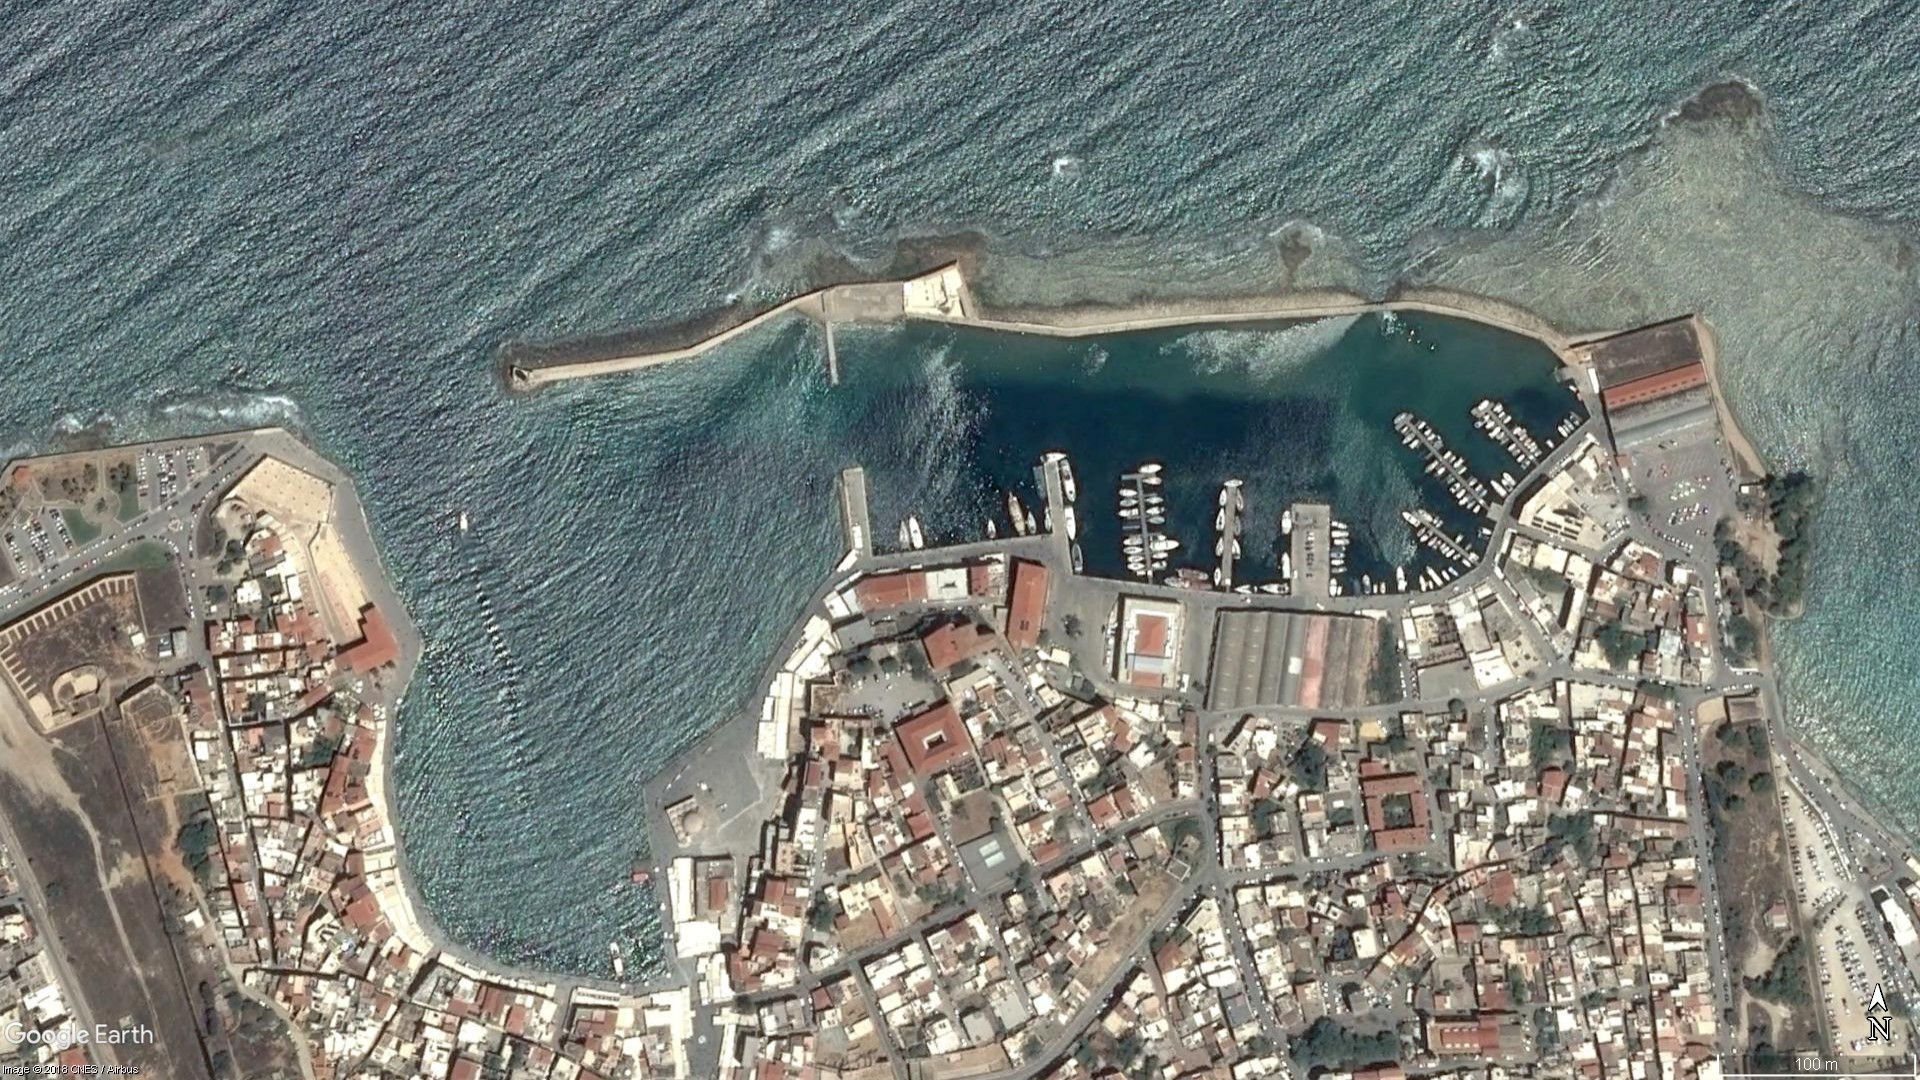 Satellite image of the Venetian harbour during mild wave conditions (January 2010). Image taken from Google Earth®.